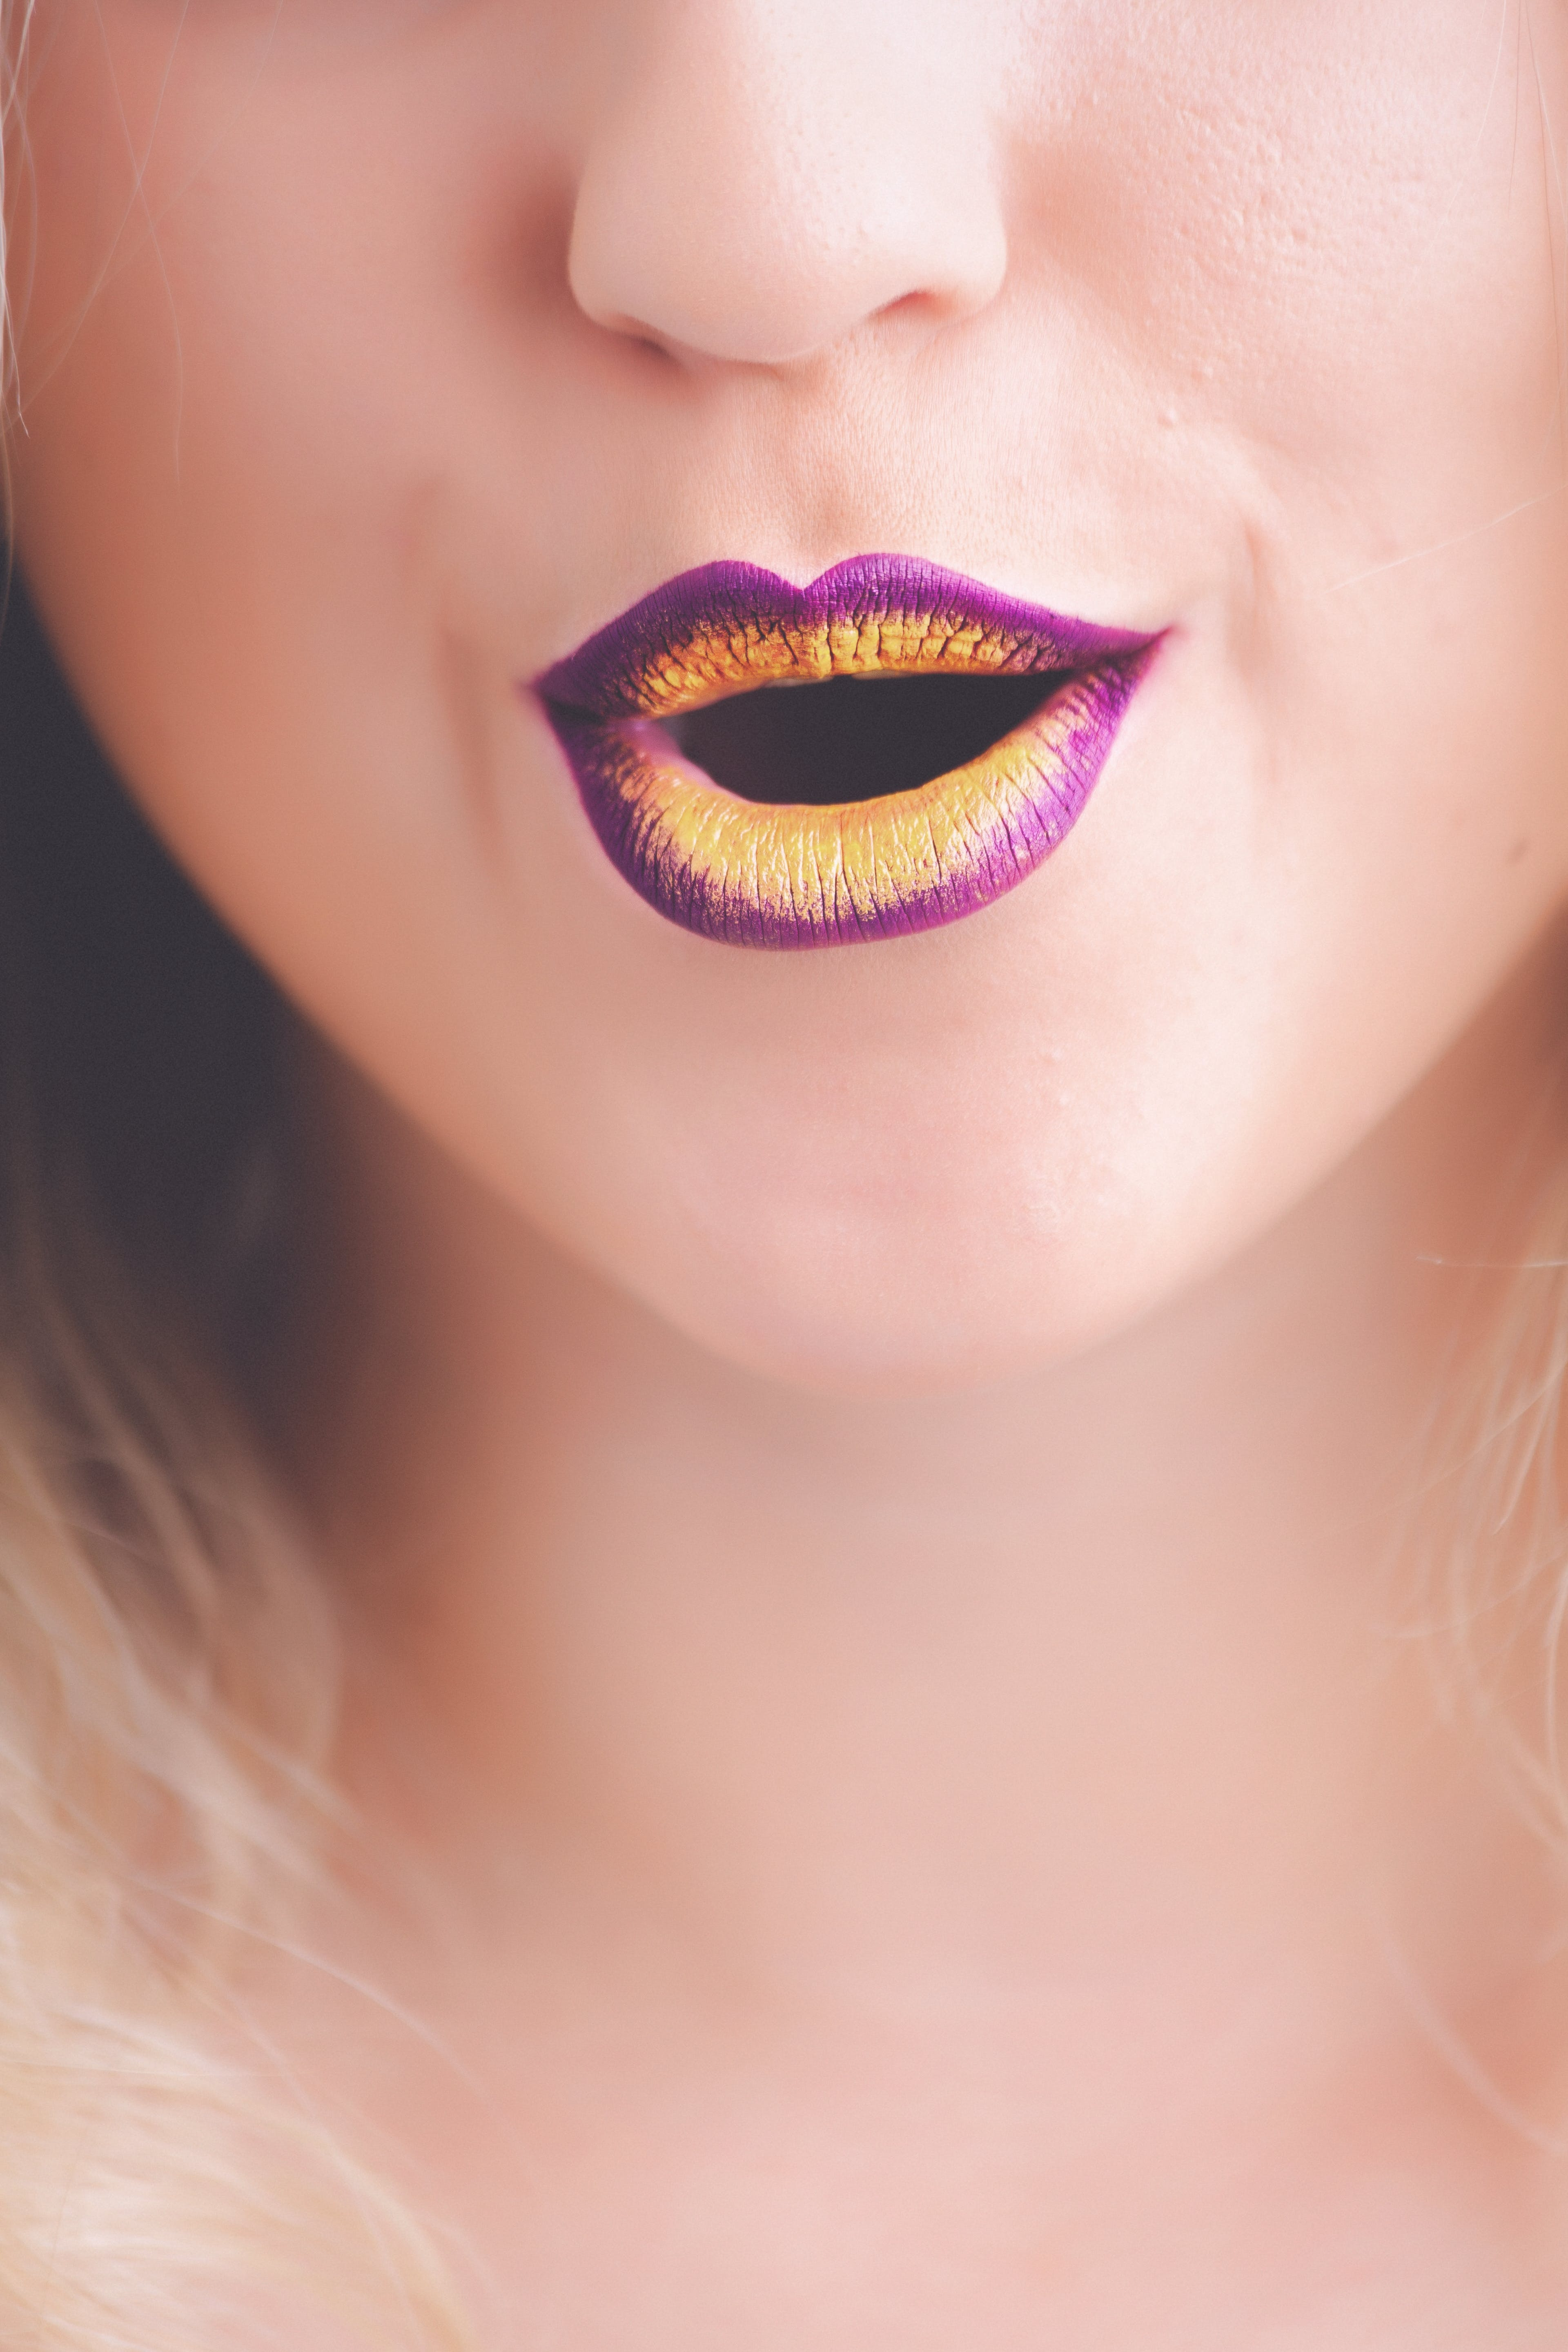 Woman With Purple and Yellow Lipstick